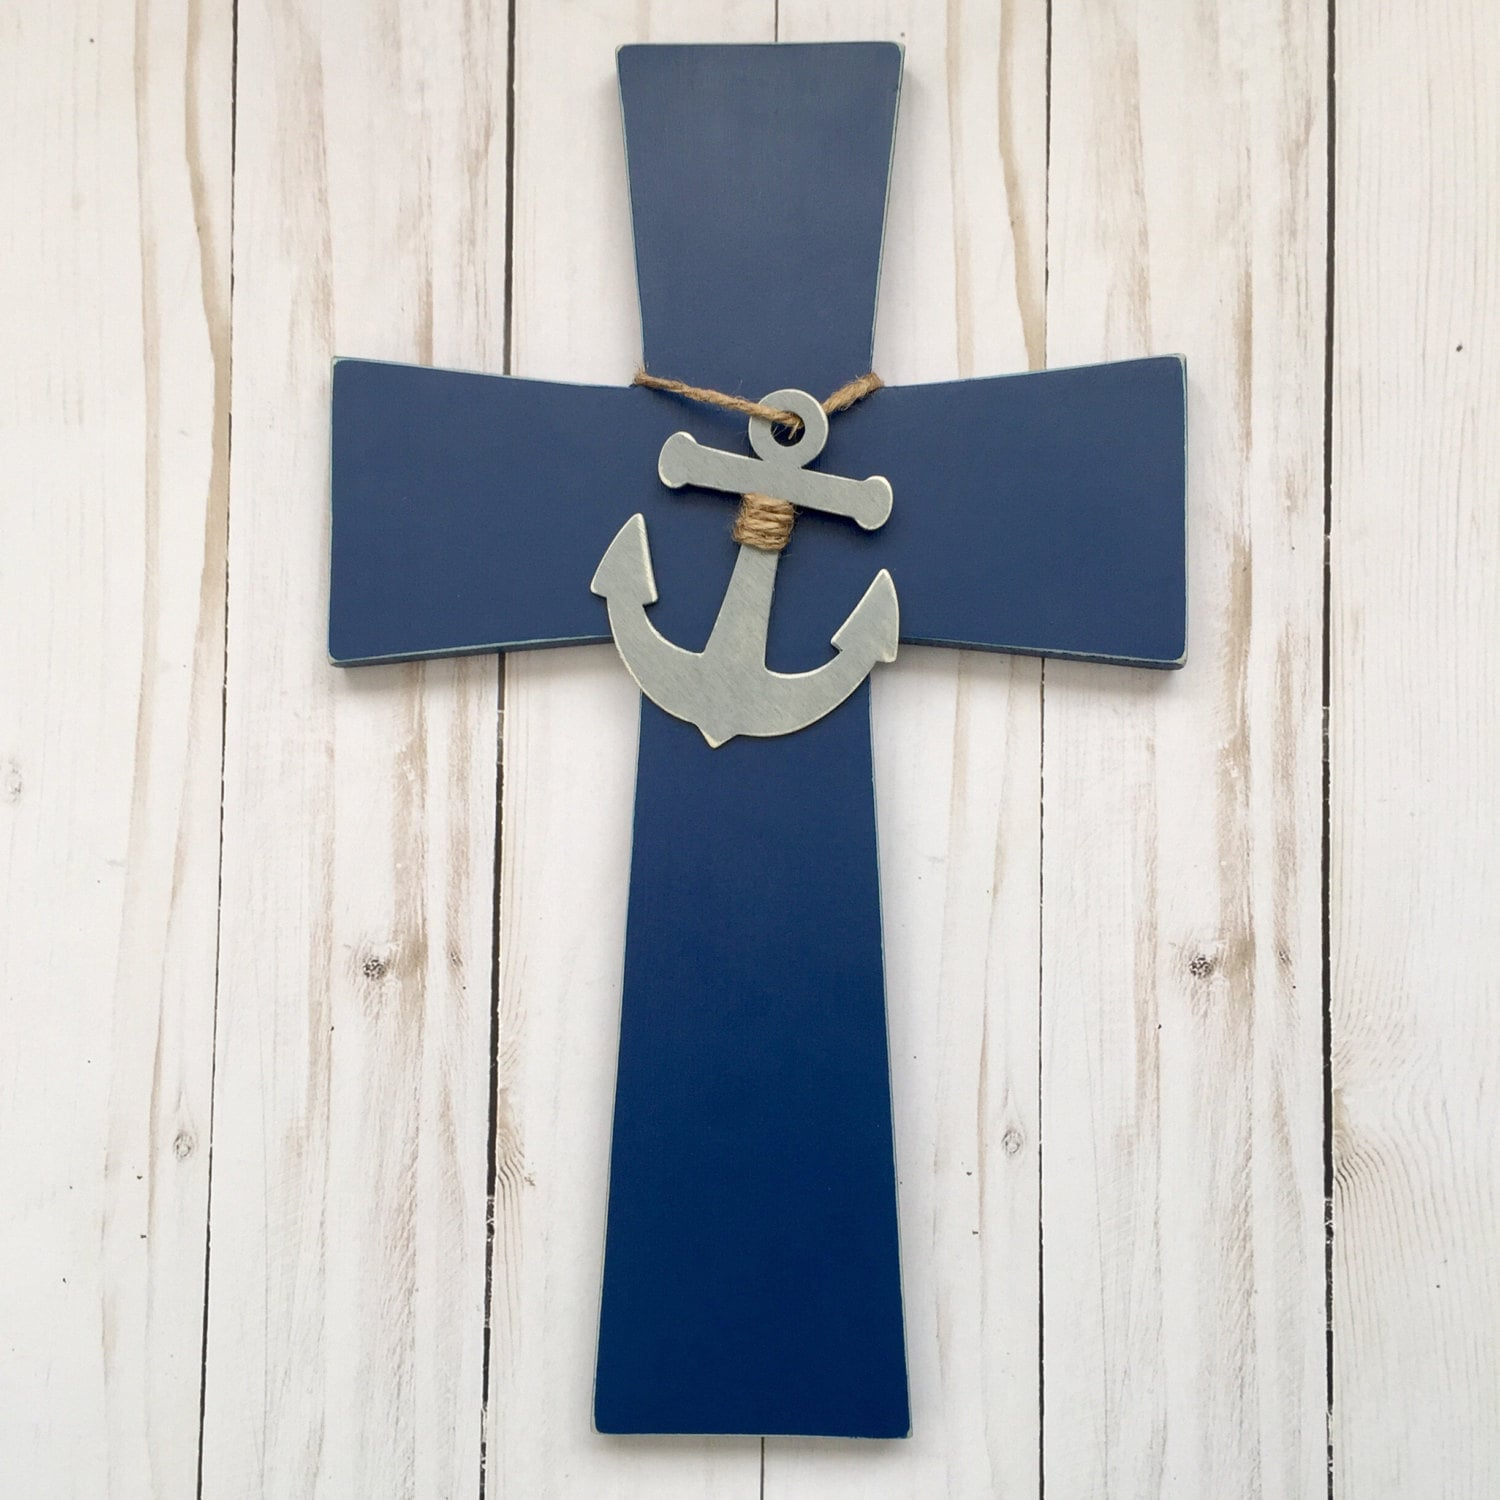 Nautical Cross Navy Anchor Wall Cross likewise Swimco Style 2 in addition Showthread also The Perfect Beach House 8 Dreamy Airbnb Getaways as well Cape Cod Cottage. on perfect beach house decor